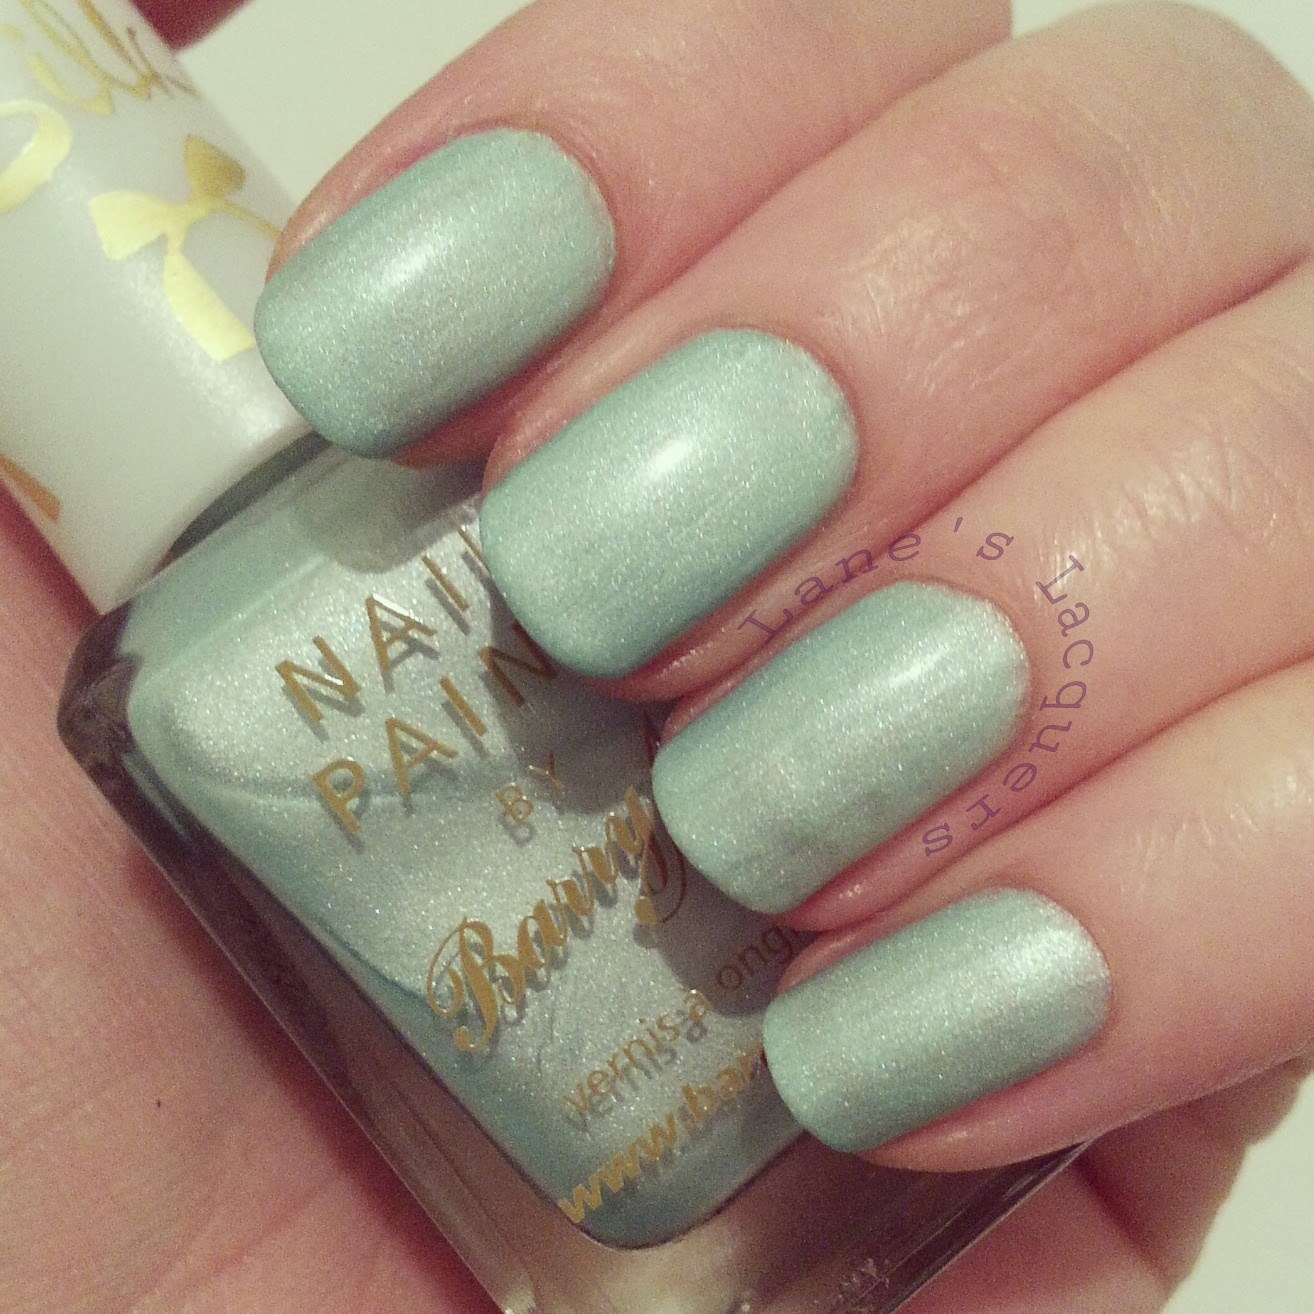 barry-m-silk-meadow-swatch-nails